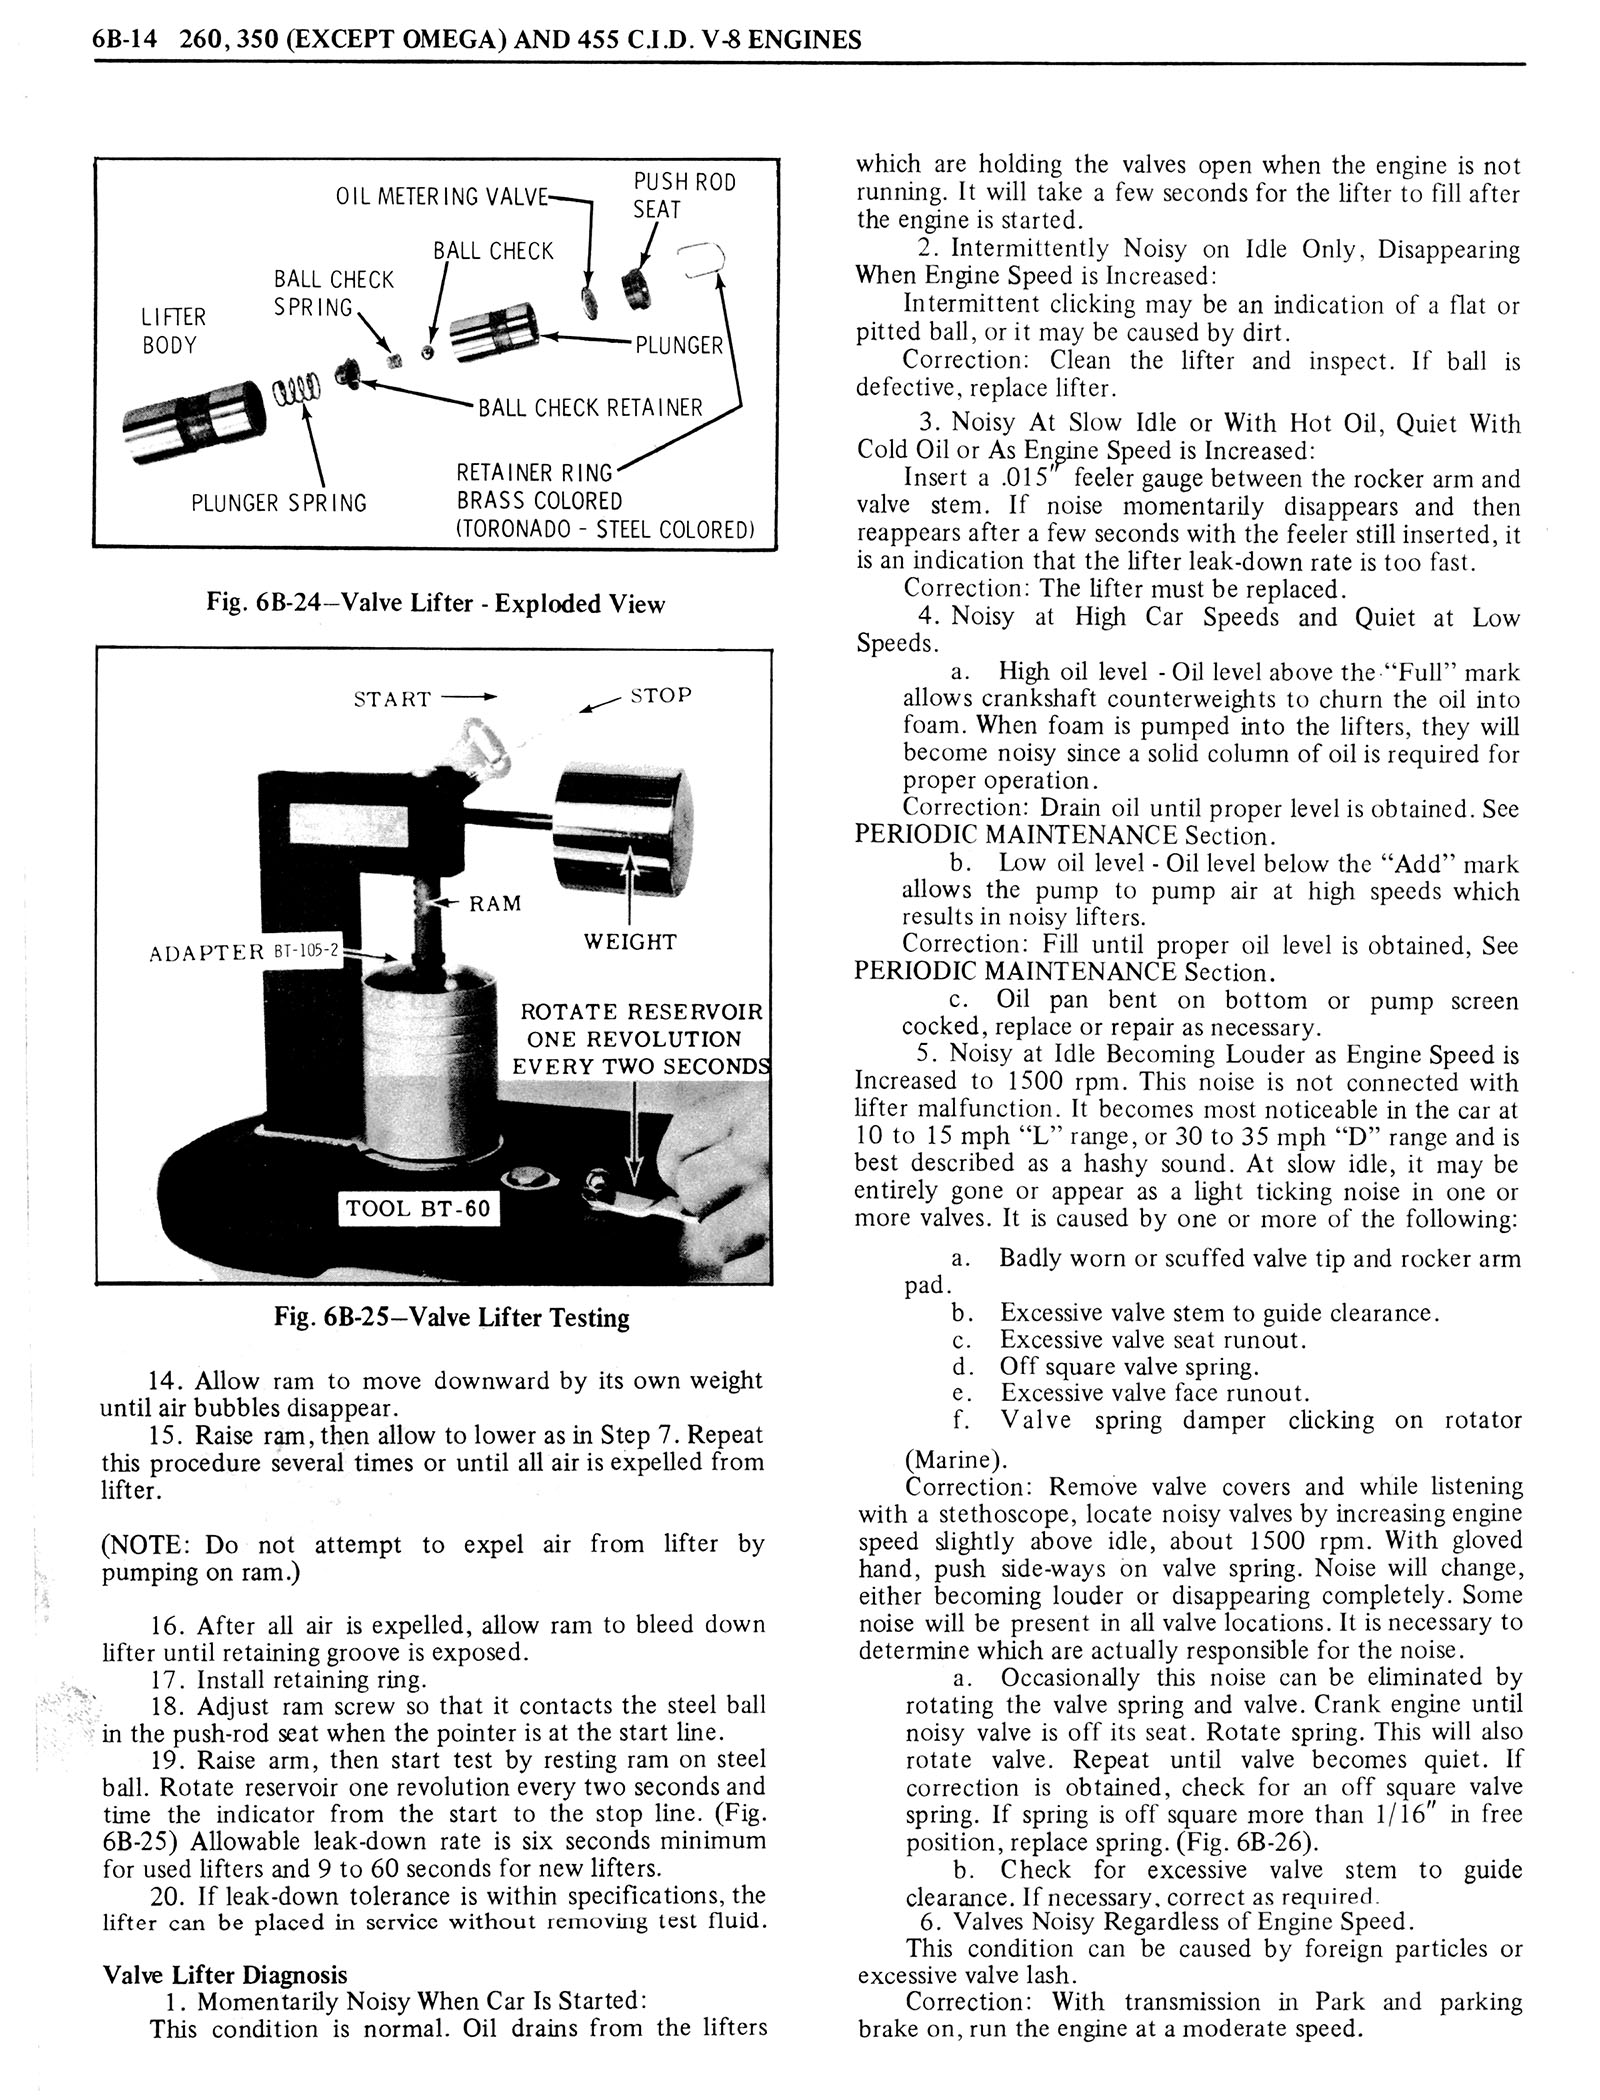 1976 Oldsmobile Service Manual page 443 of 1390